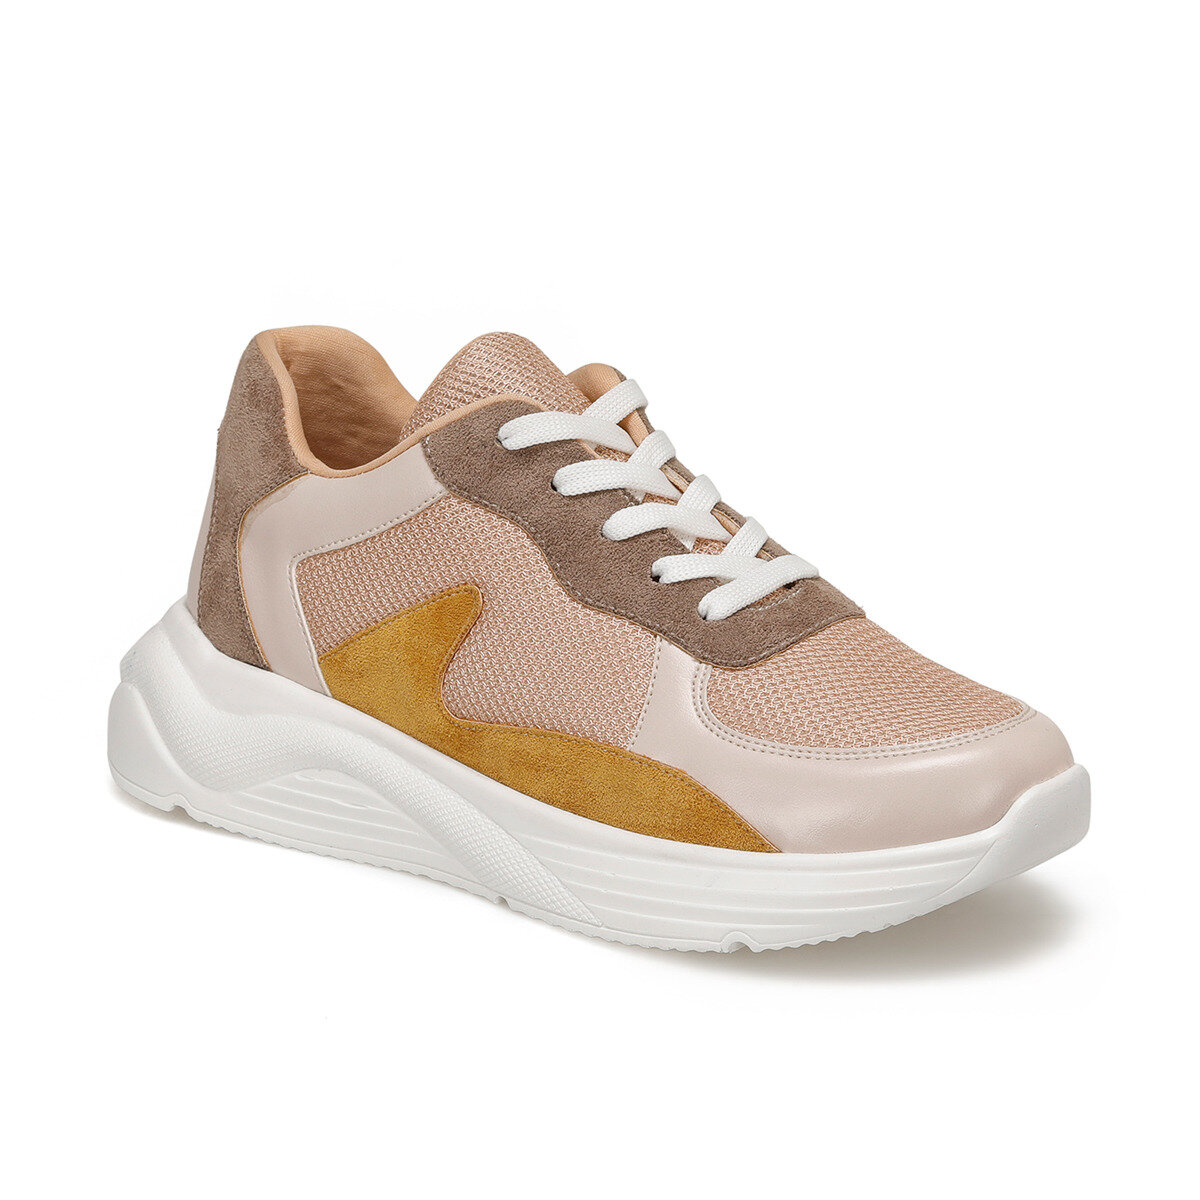 FLO JONAS Tan Women 'S Sneaker Shoes BUTIGO title=